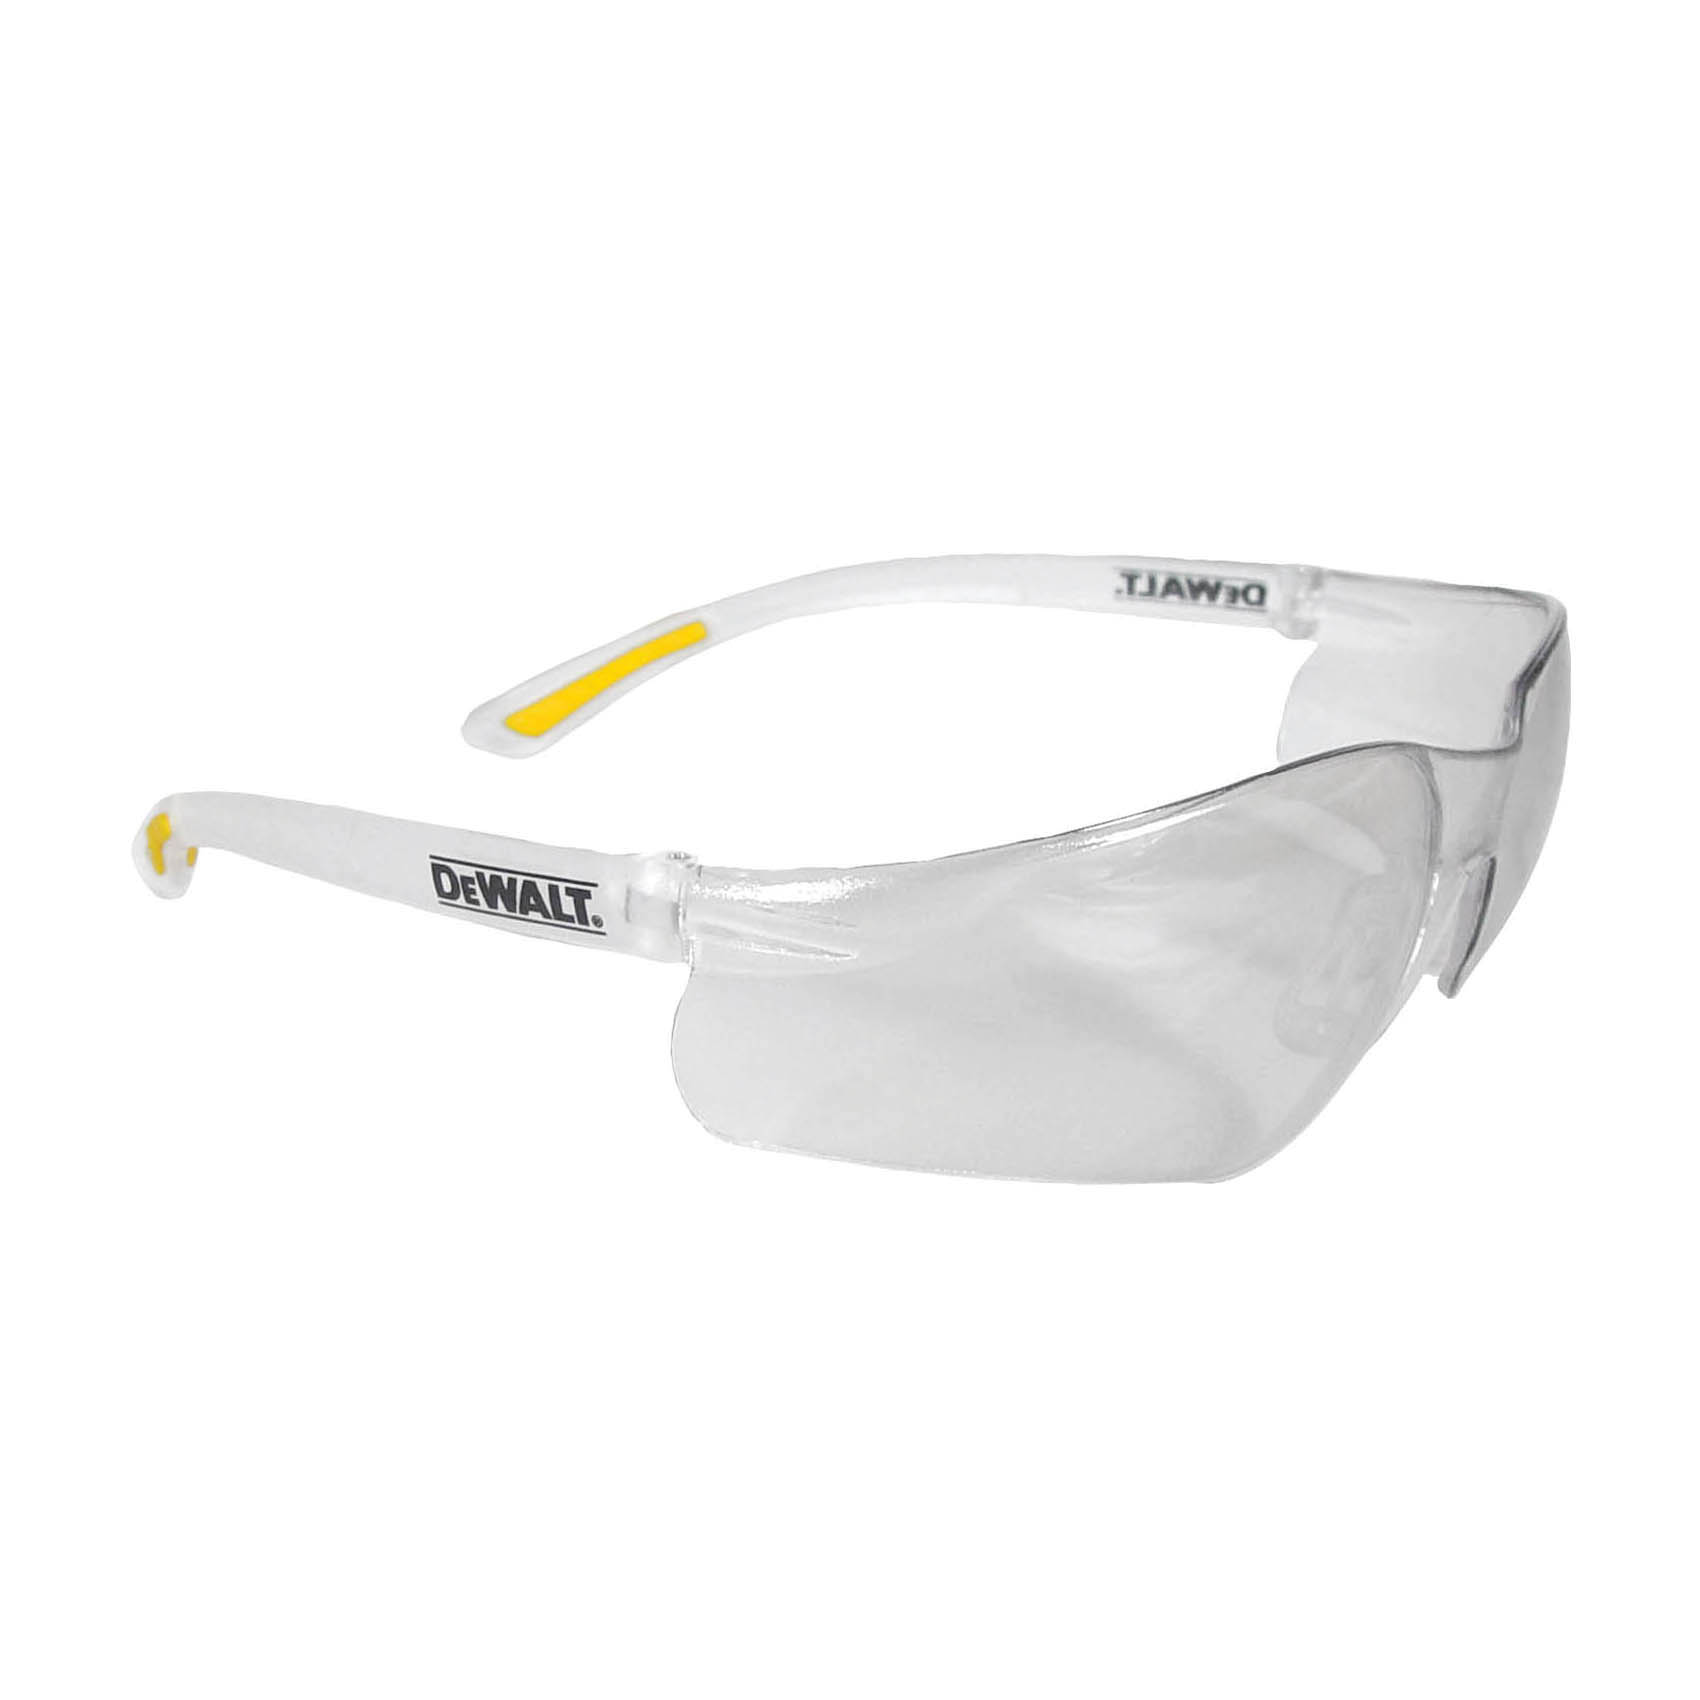 DeWALT® by Radians® DPG51-2D Radius™ DPG51 Safety Glasses, Hard Coat/Impact Resistant, Smoke Lens, Half Framed Frame, Black, Nylon Frame, Polycarbonate Lens, ANSI Z87.1+